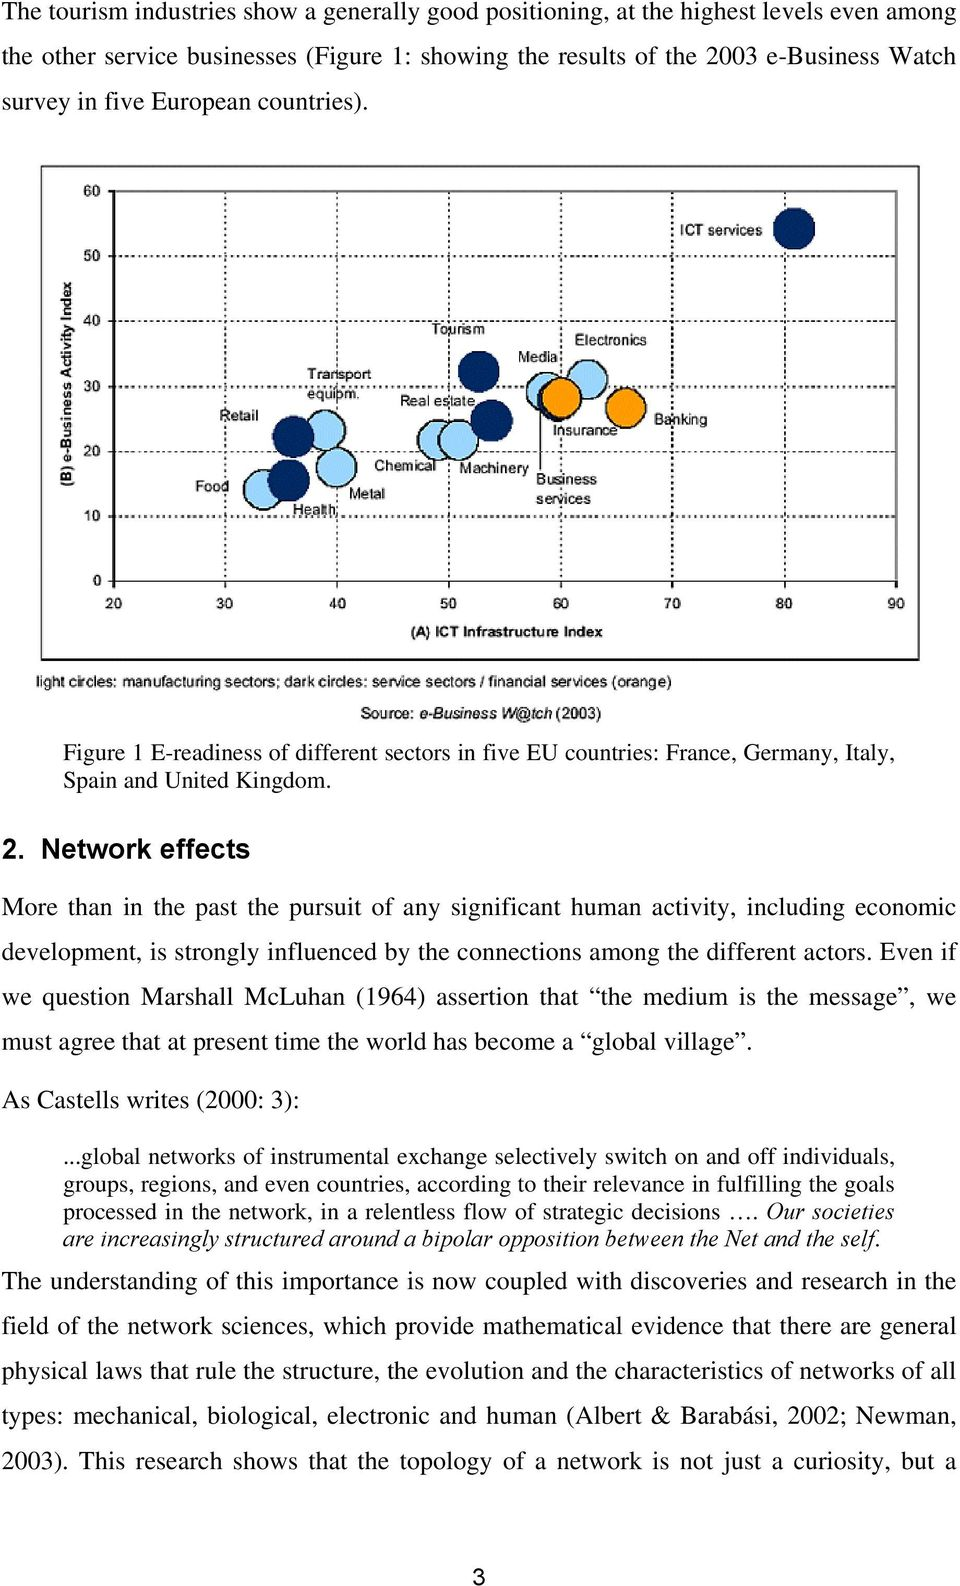 Network effects More than in the past the pursuit of any significant human activity, including economic development, is strongly influenced by the connections among the different actors.